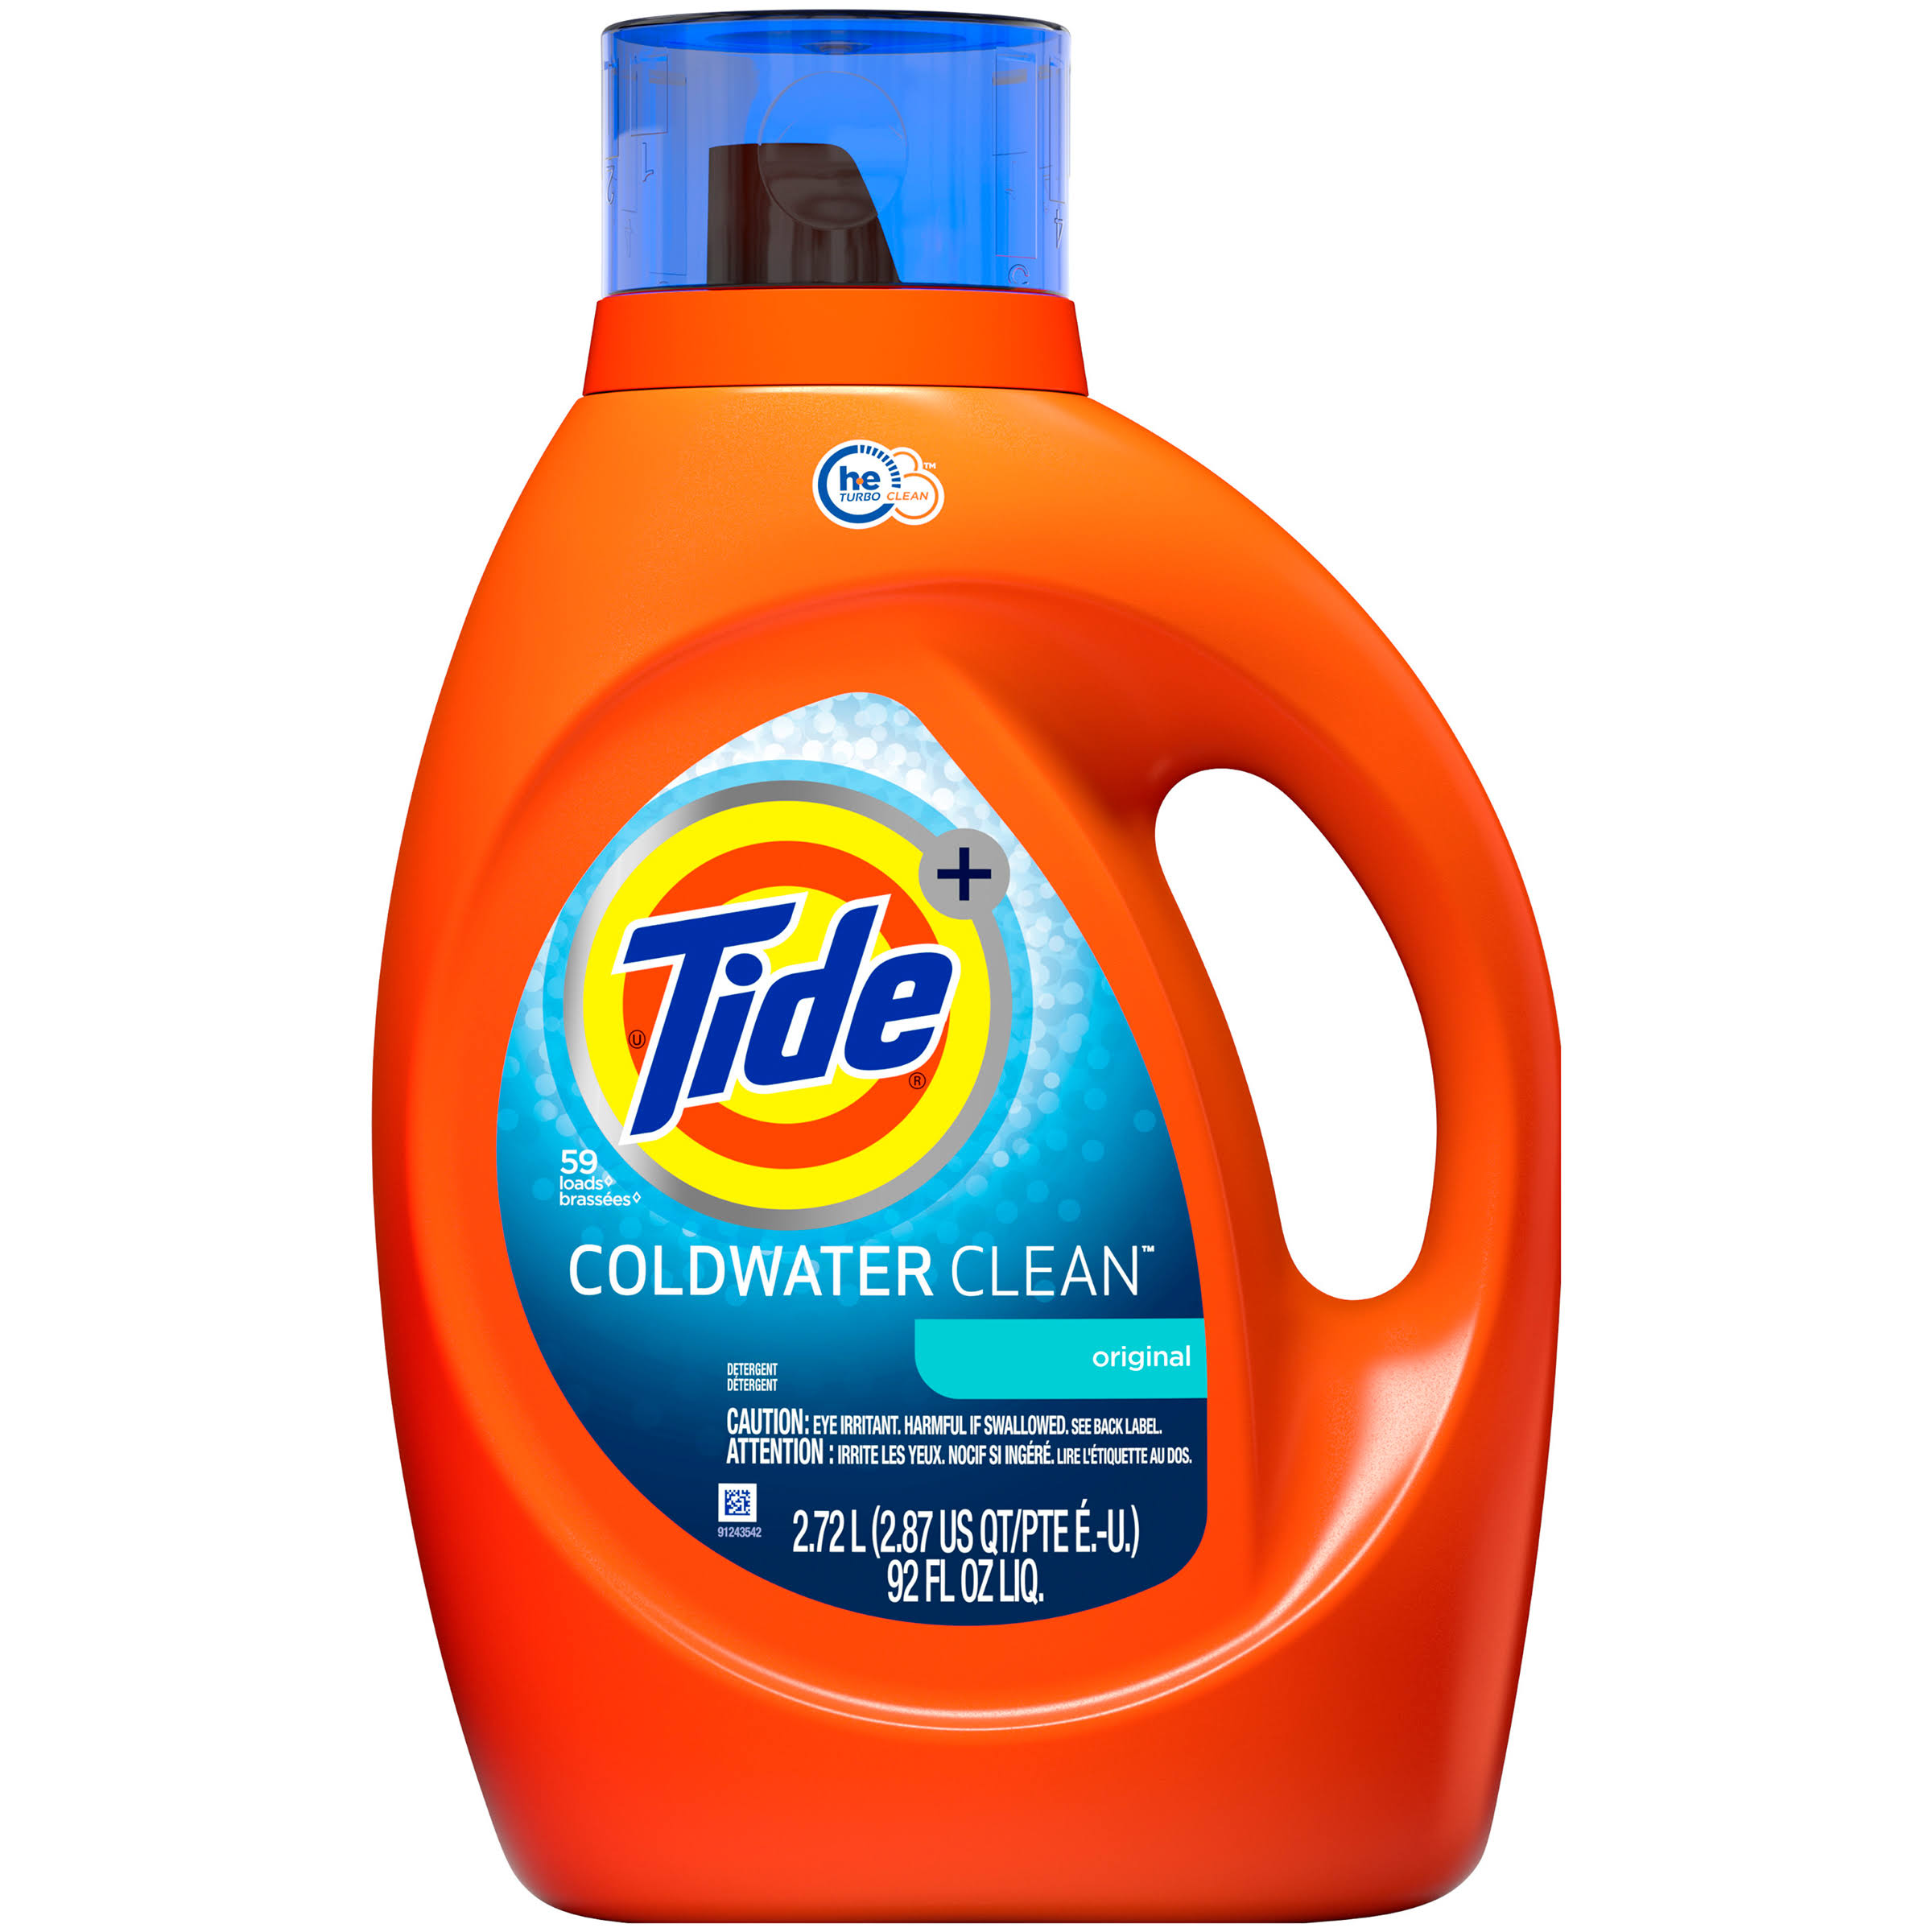 Tide Coldwater Clean Original Detergent - 92oz